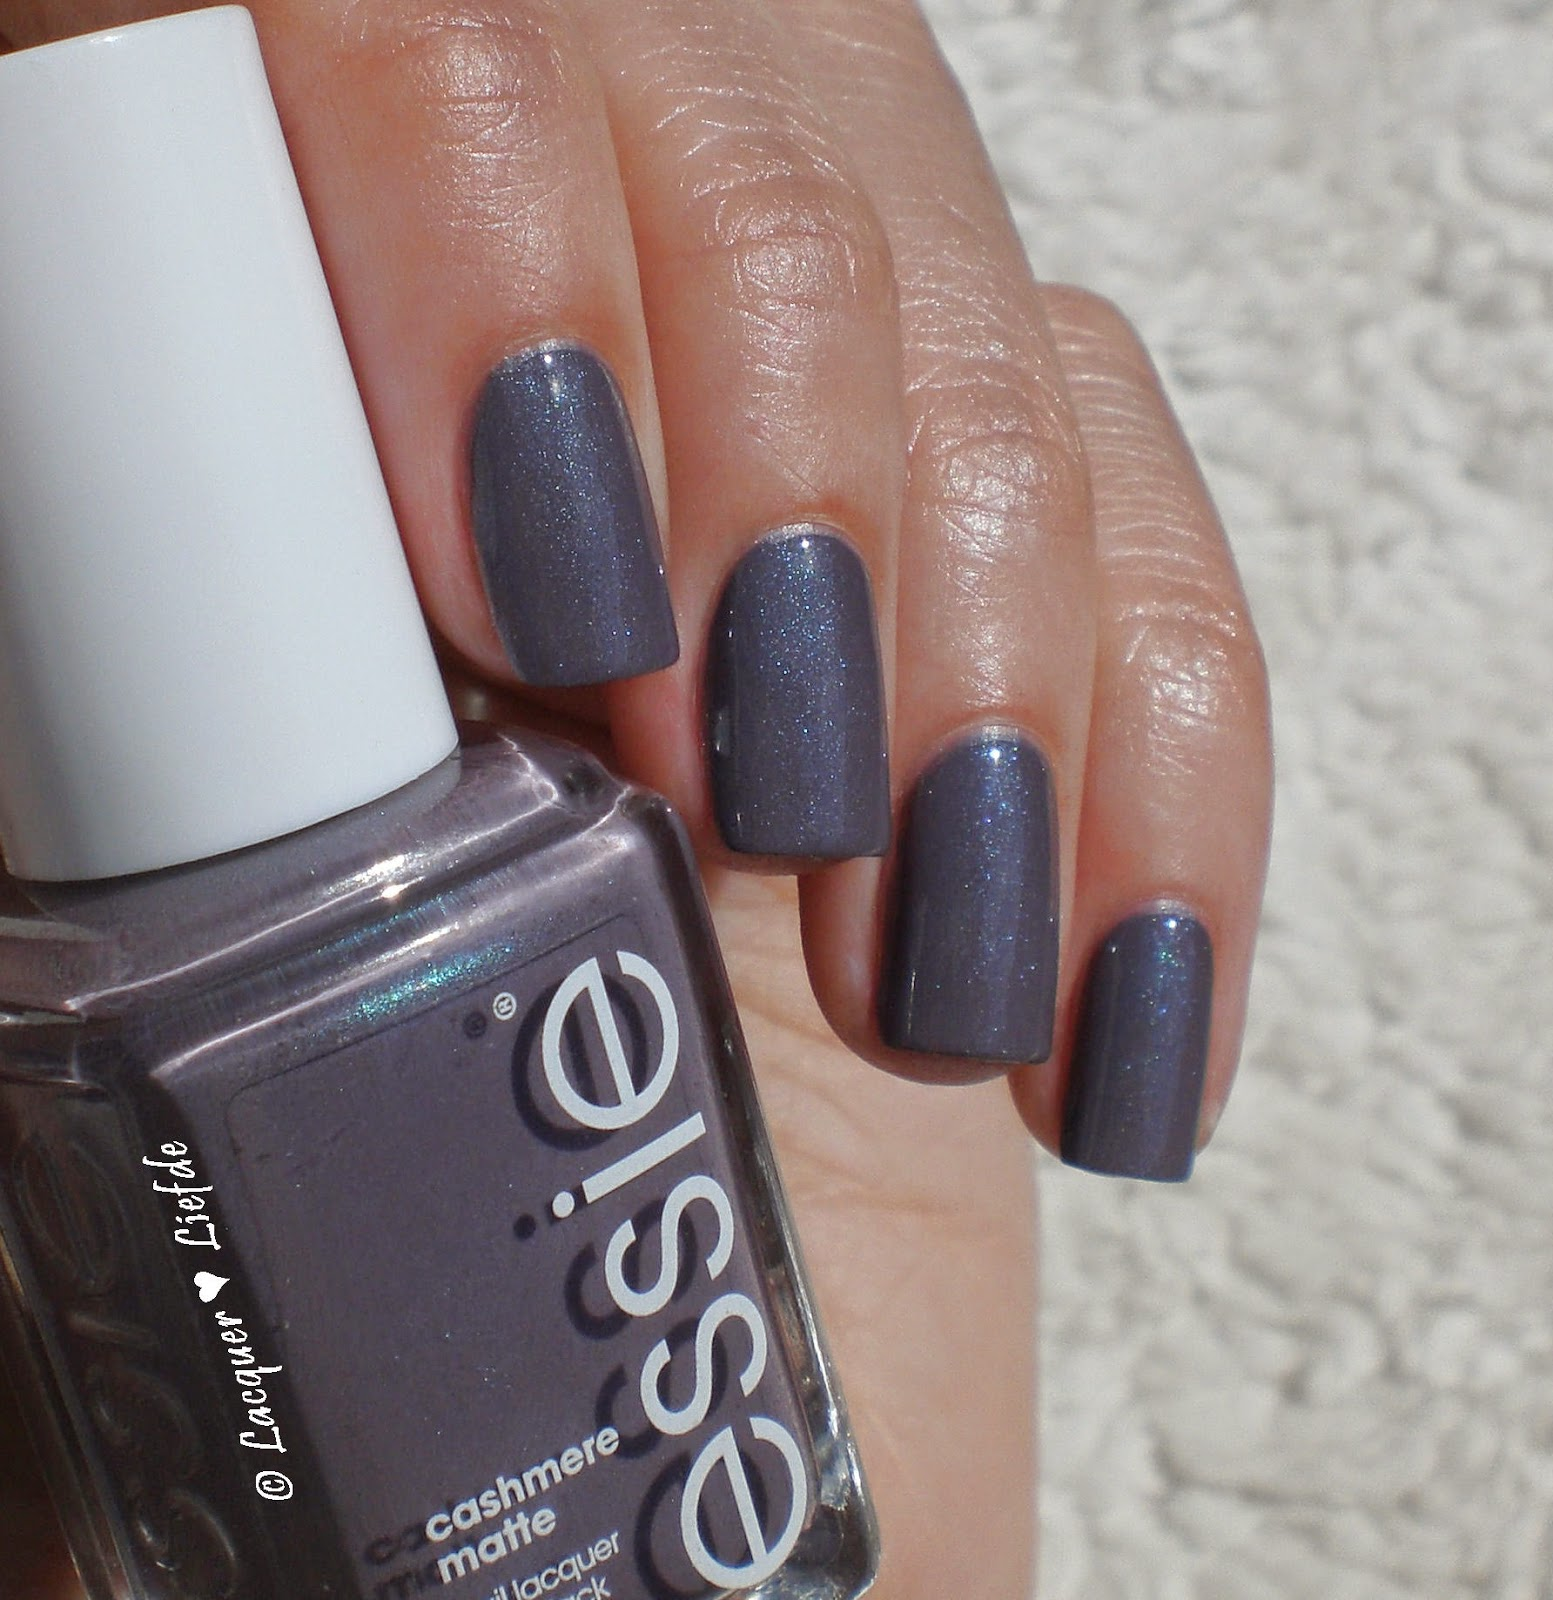 Essie Cashmere Matte Collection coat couture